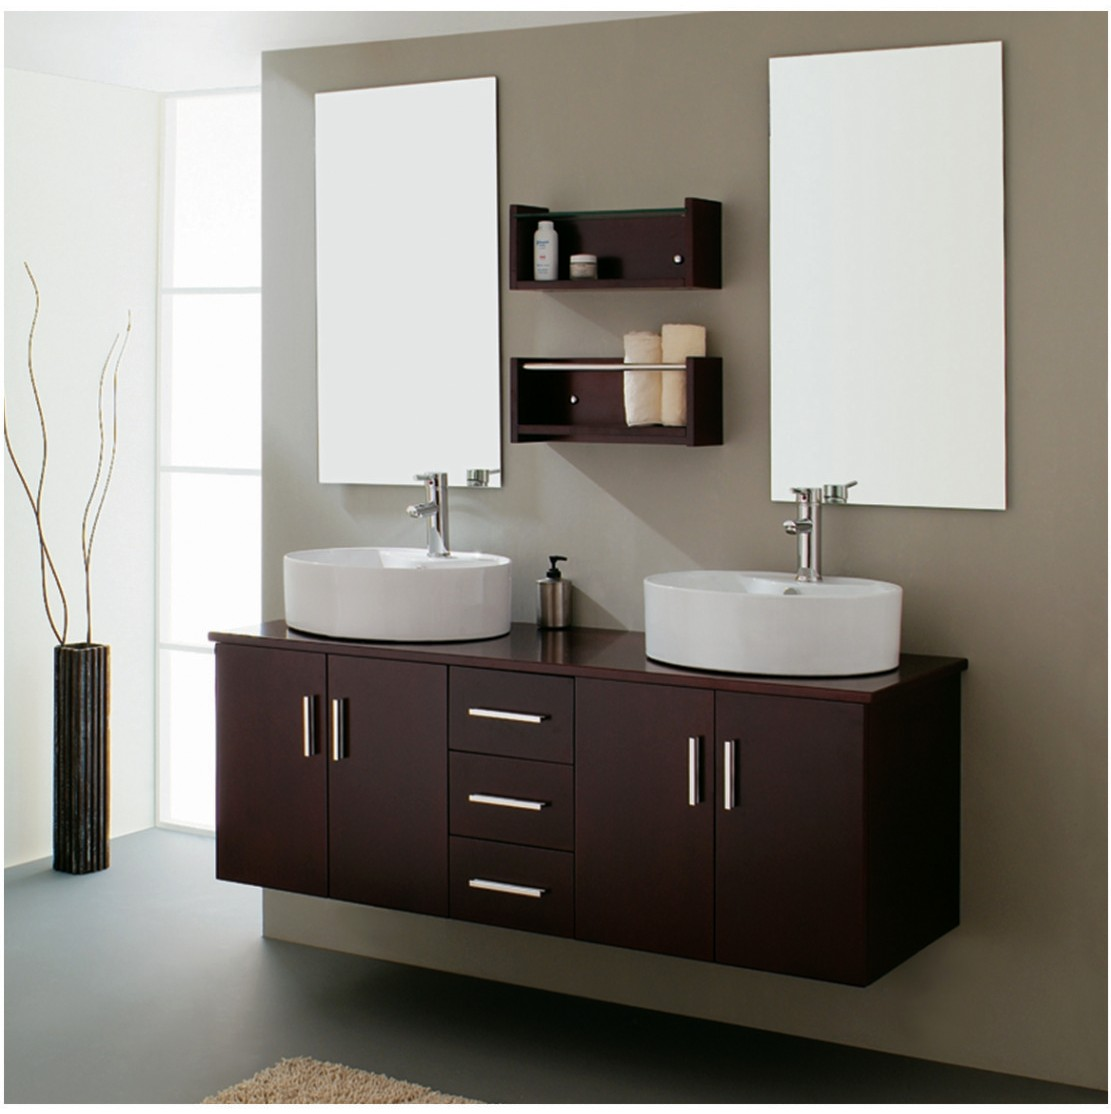 Modern bathroom double sink home decorating ideas for Bathroom sinks designs